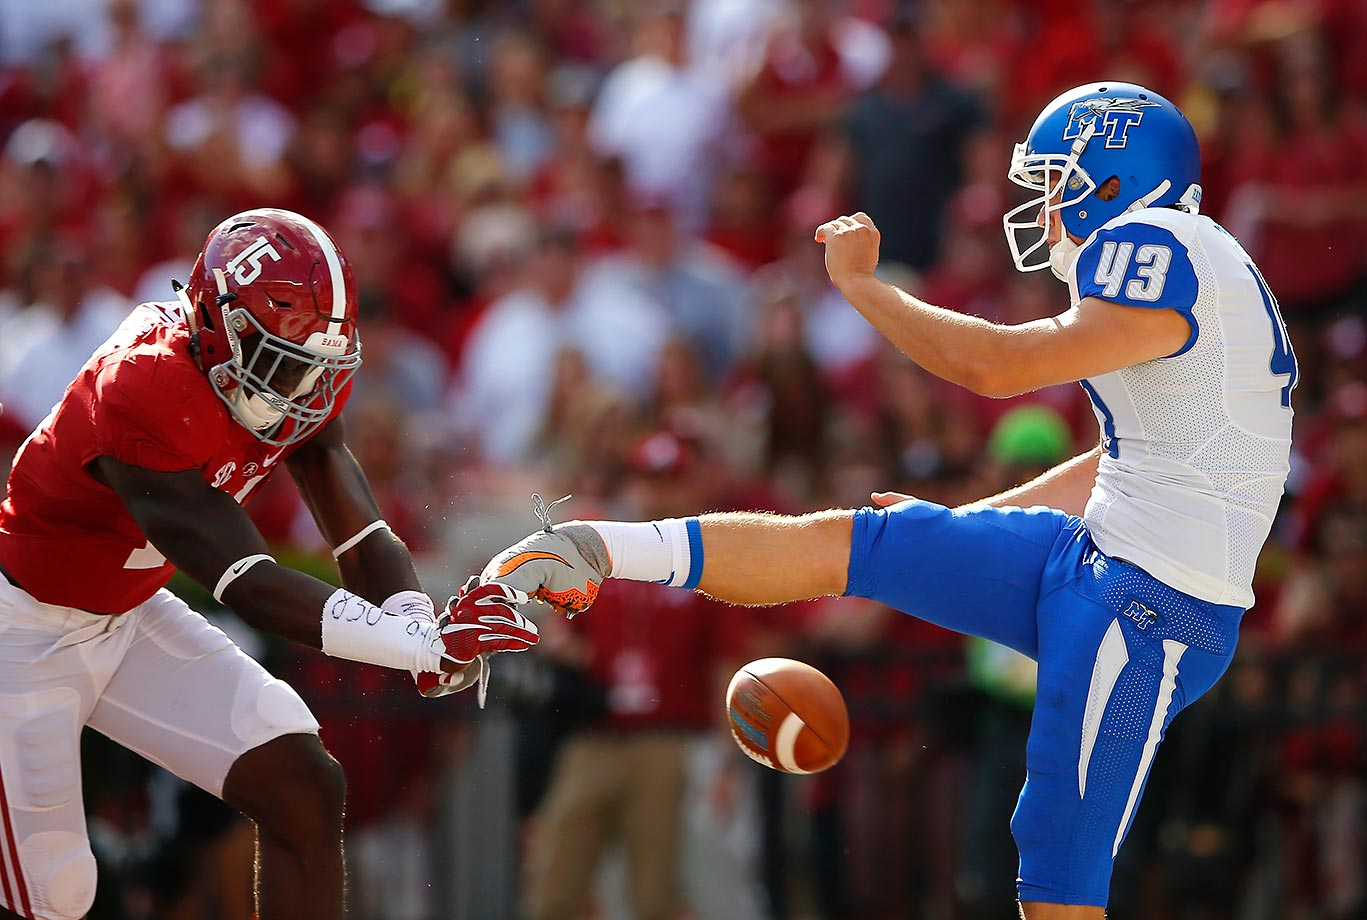 Ronnie Harrison of Alabama blocks a Trevor Owens punt in a game against Middle Tennessee.